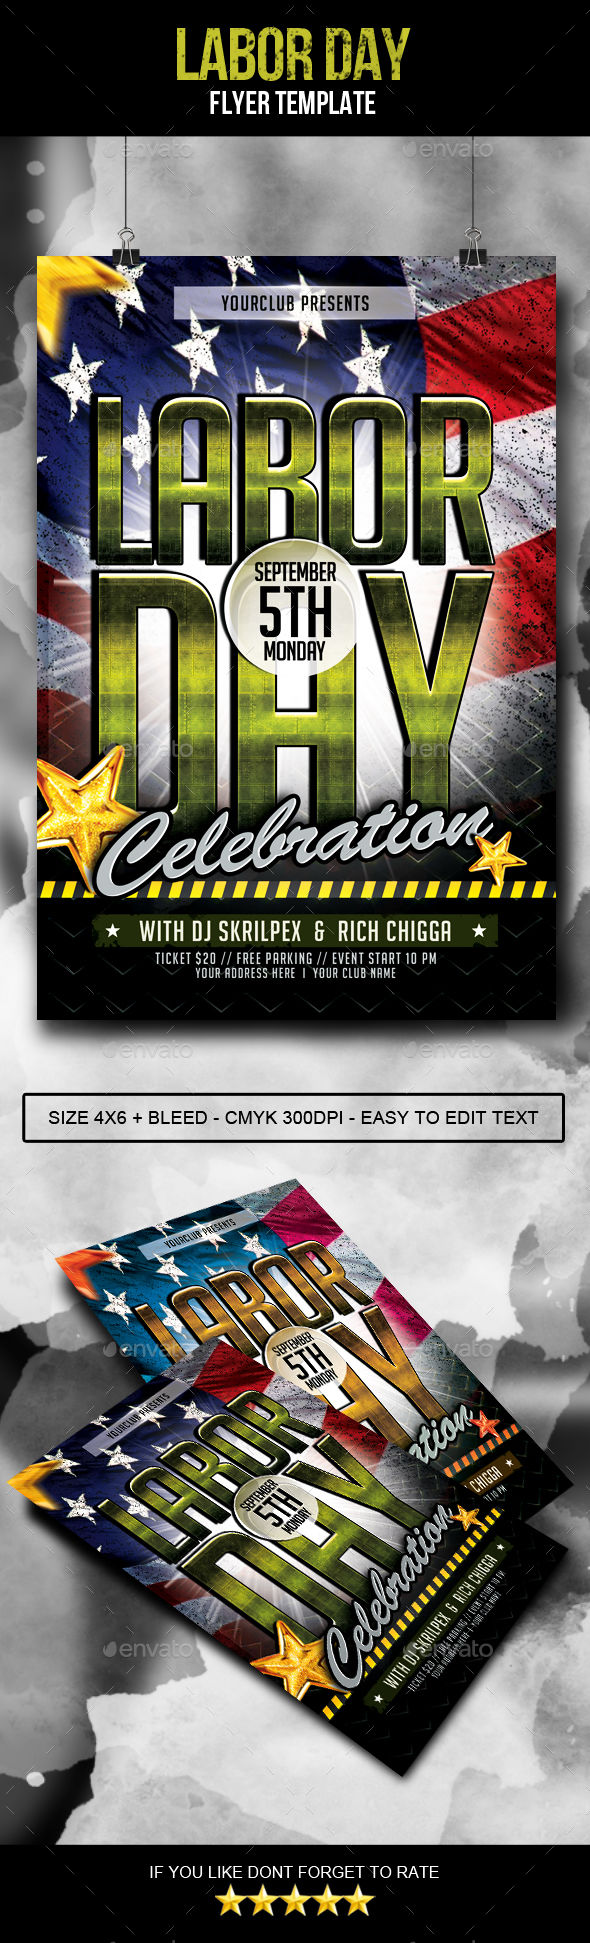 Labor Day Flyer by AyumaDesign (Labor Day party flyer)